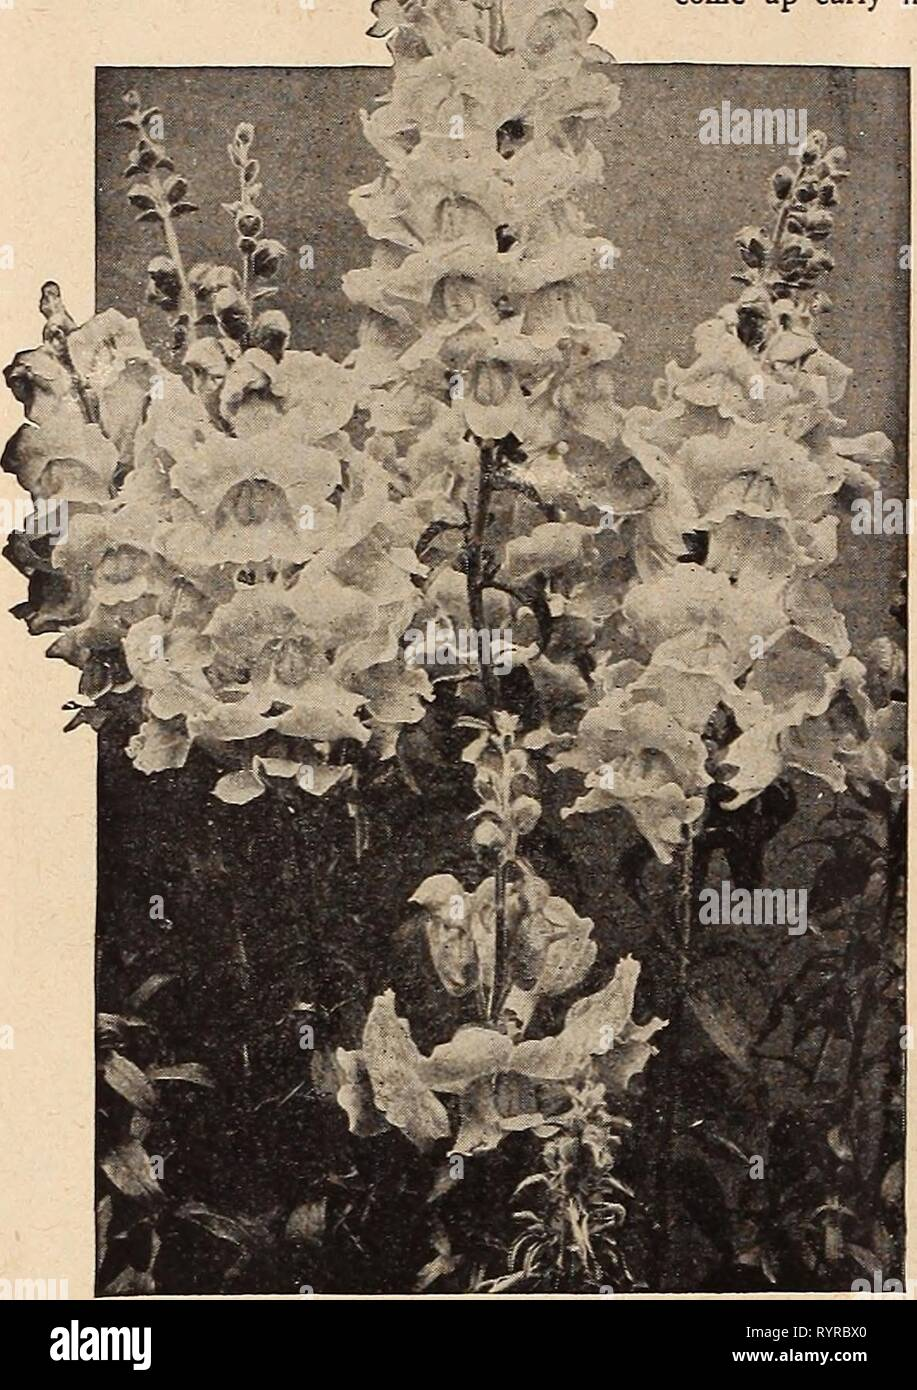 Dreer's midsummer list 1920 (1920) Dreer's midsummer list 1920 . dreersmidsummerl1920henr Year: 1920  10 HENRY A. DREER, PHILADELPHIA—FLOWER SEEDS r m    AQ1JIL,EGIA (Columbine) No hardy plant grown from seed is more easily handled than the Columbine. Seed may be sown in the open ground early in spring, and will, in most cases bloom the same season; or they may be planted in August or September, and will come up early in spring and make vigorous plants, which will bloom abundantly during late spring and early summer. Columbines should be planted wherever their presence will serve to lighten up - Stock Image